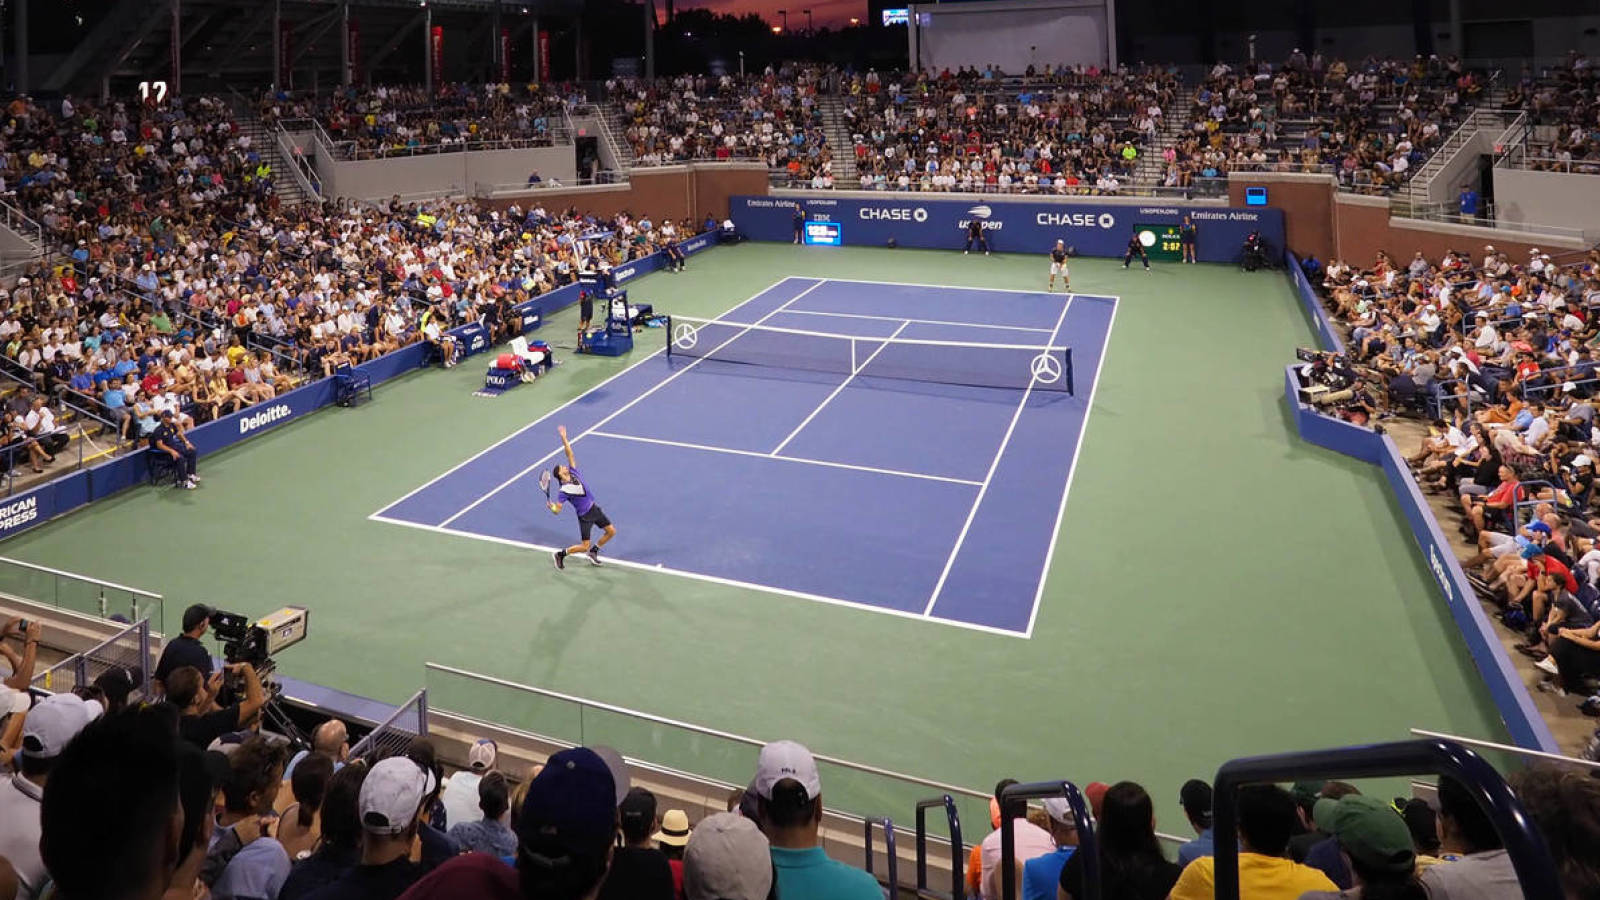 U.S. Open director admits tennis tournament could be canceled